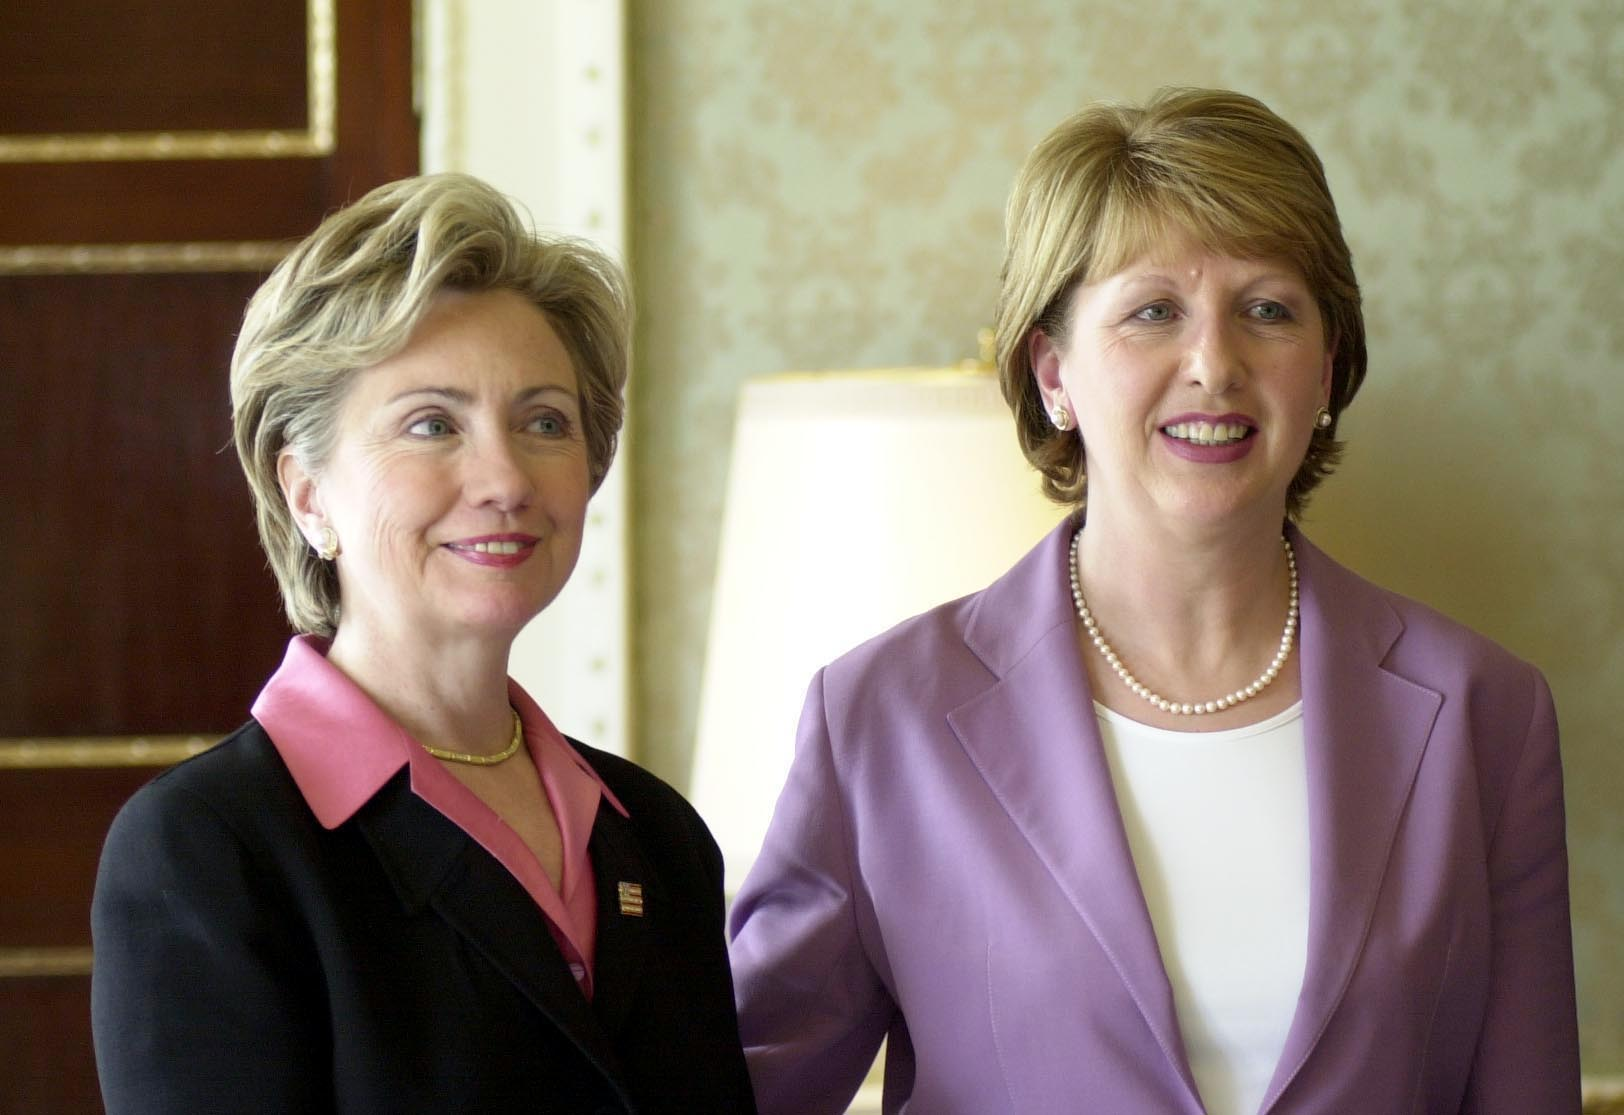 Then-Senator Hillary Rodham Clinton visits President of Ireland Mary McAleese during a visit by the former first lady to Aras An Uachtarain, Dublin. (Photo: Photocall Ireland)